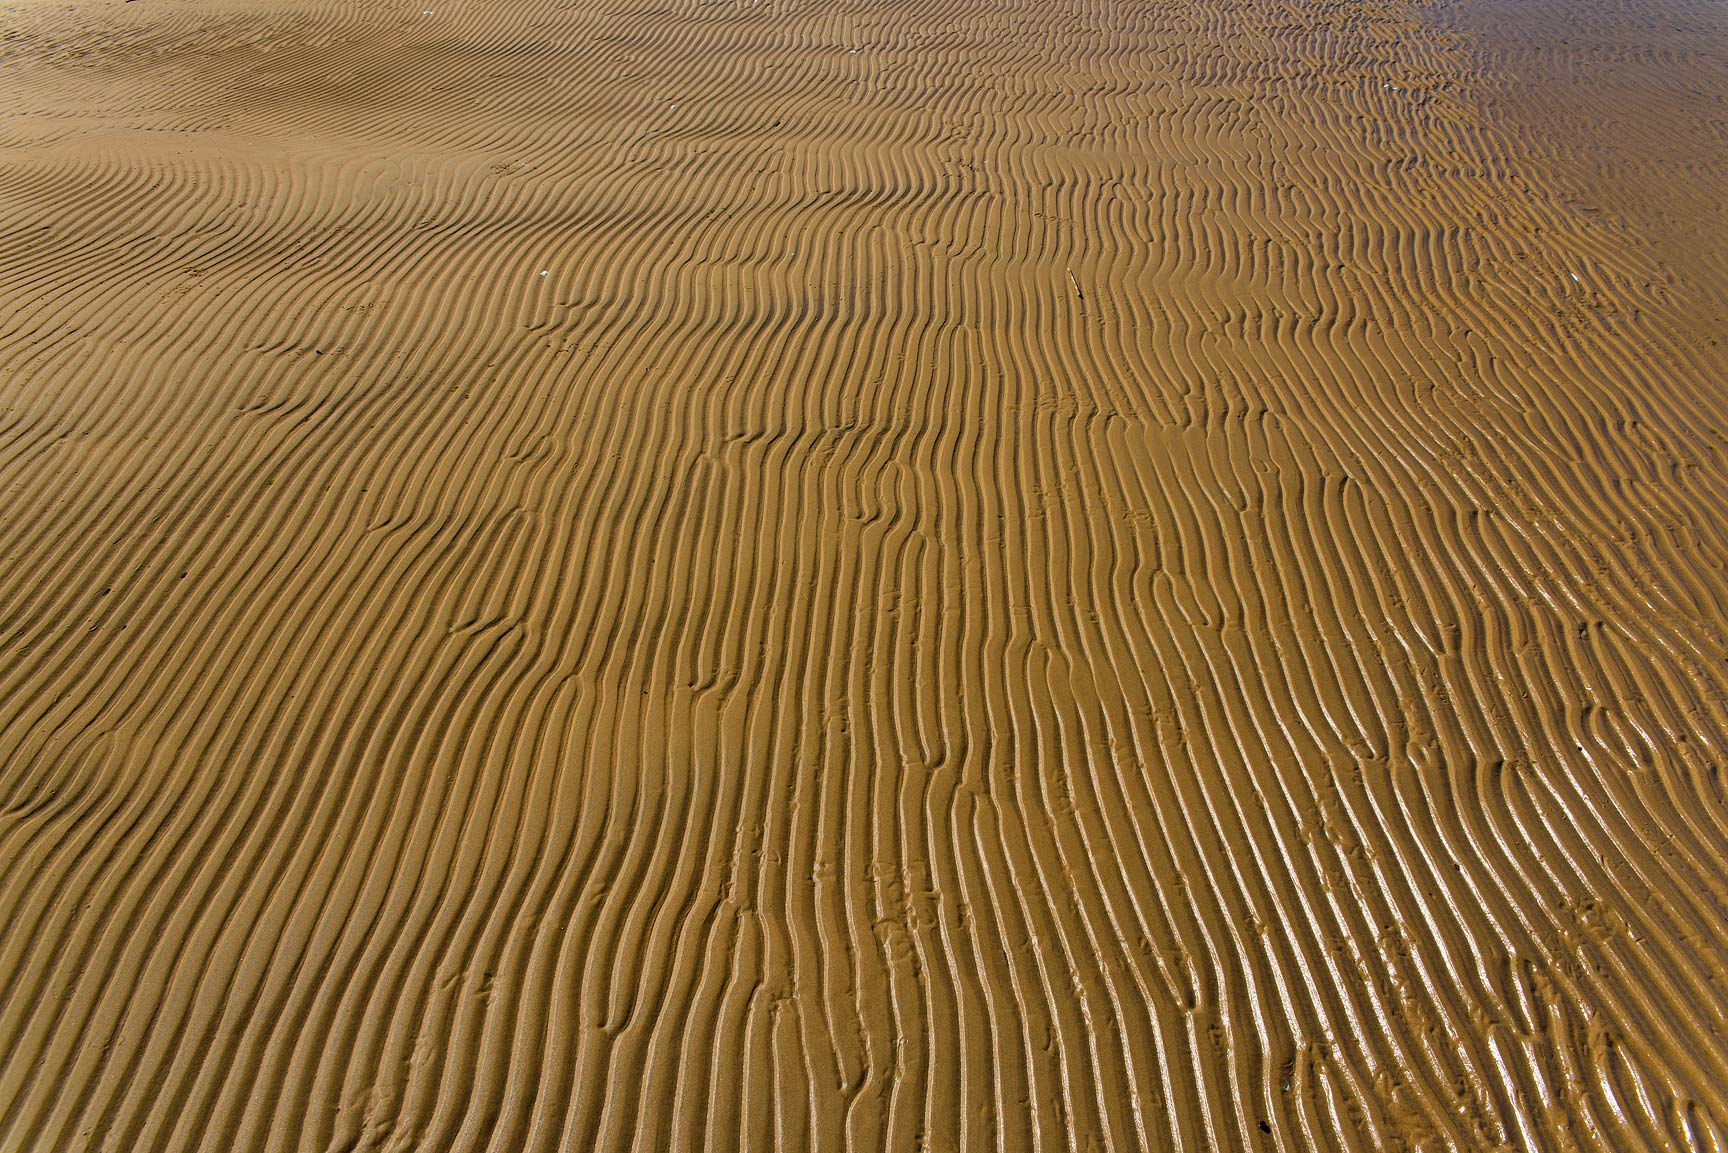 Texture of sand ripples on a beach east of Solnechnoe, near St.Petersburg. Russia